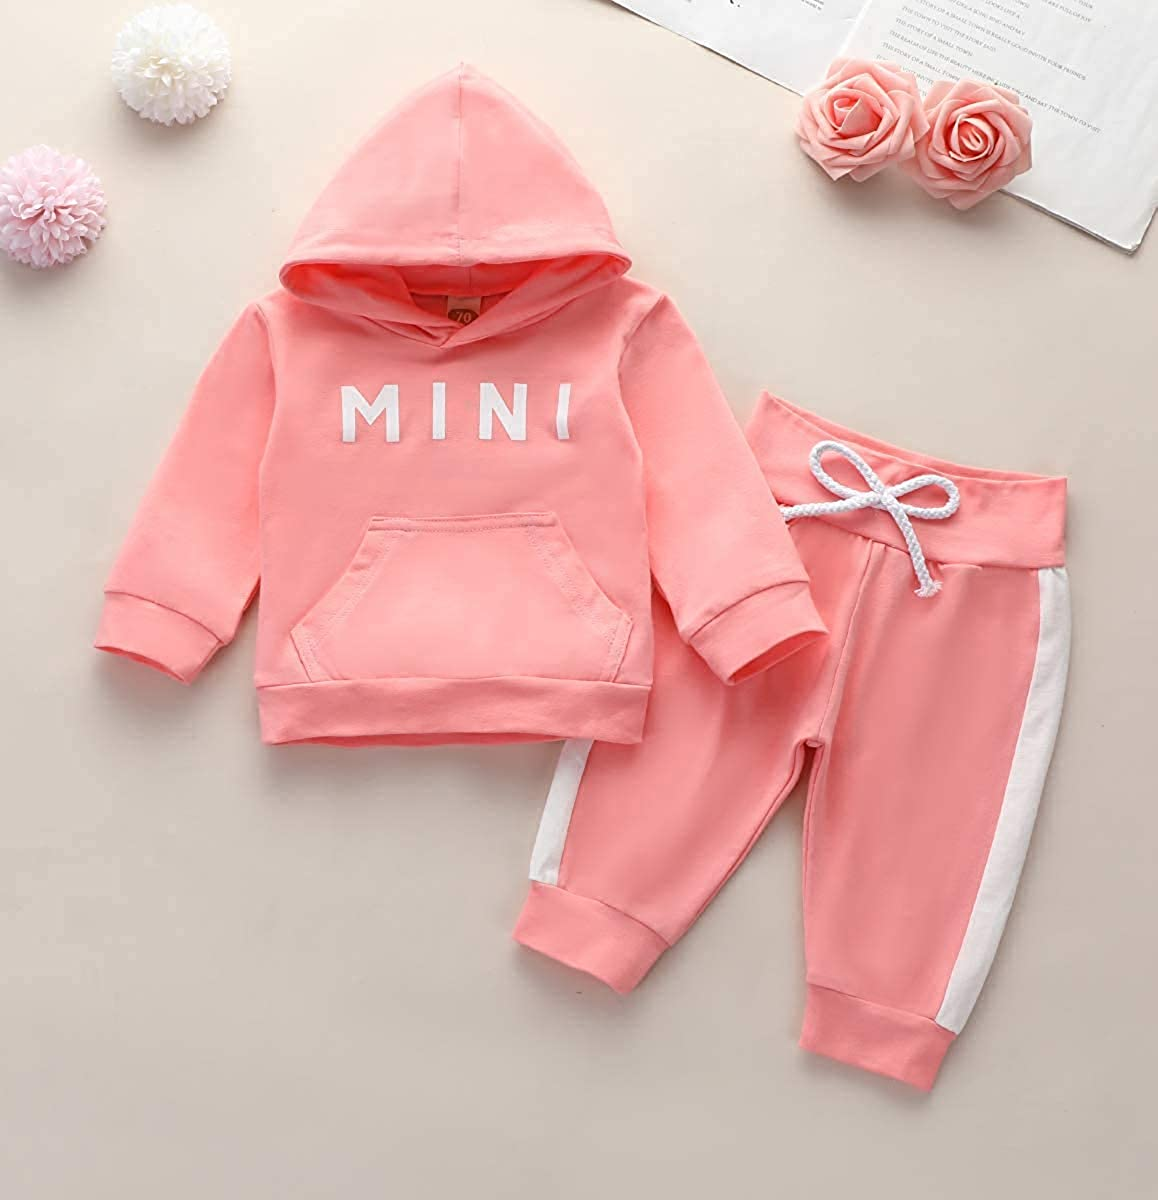 Toddler Baby Girl Hoodies Tracksuits Solid Color Hoodie Sweatsuit Pullover Long Pants Tracksuit 2Pcs Outfits Set